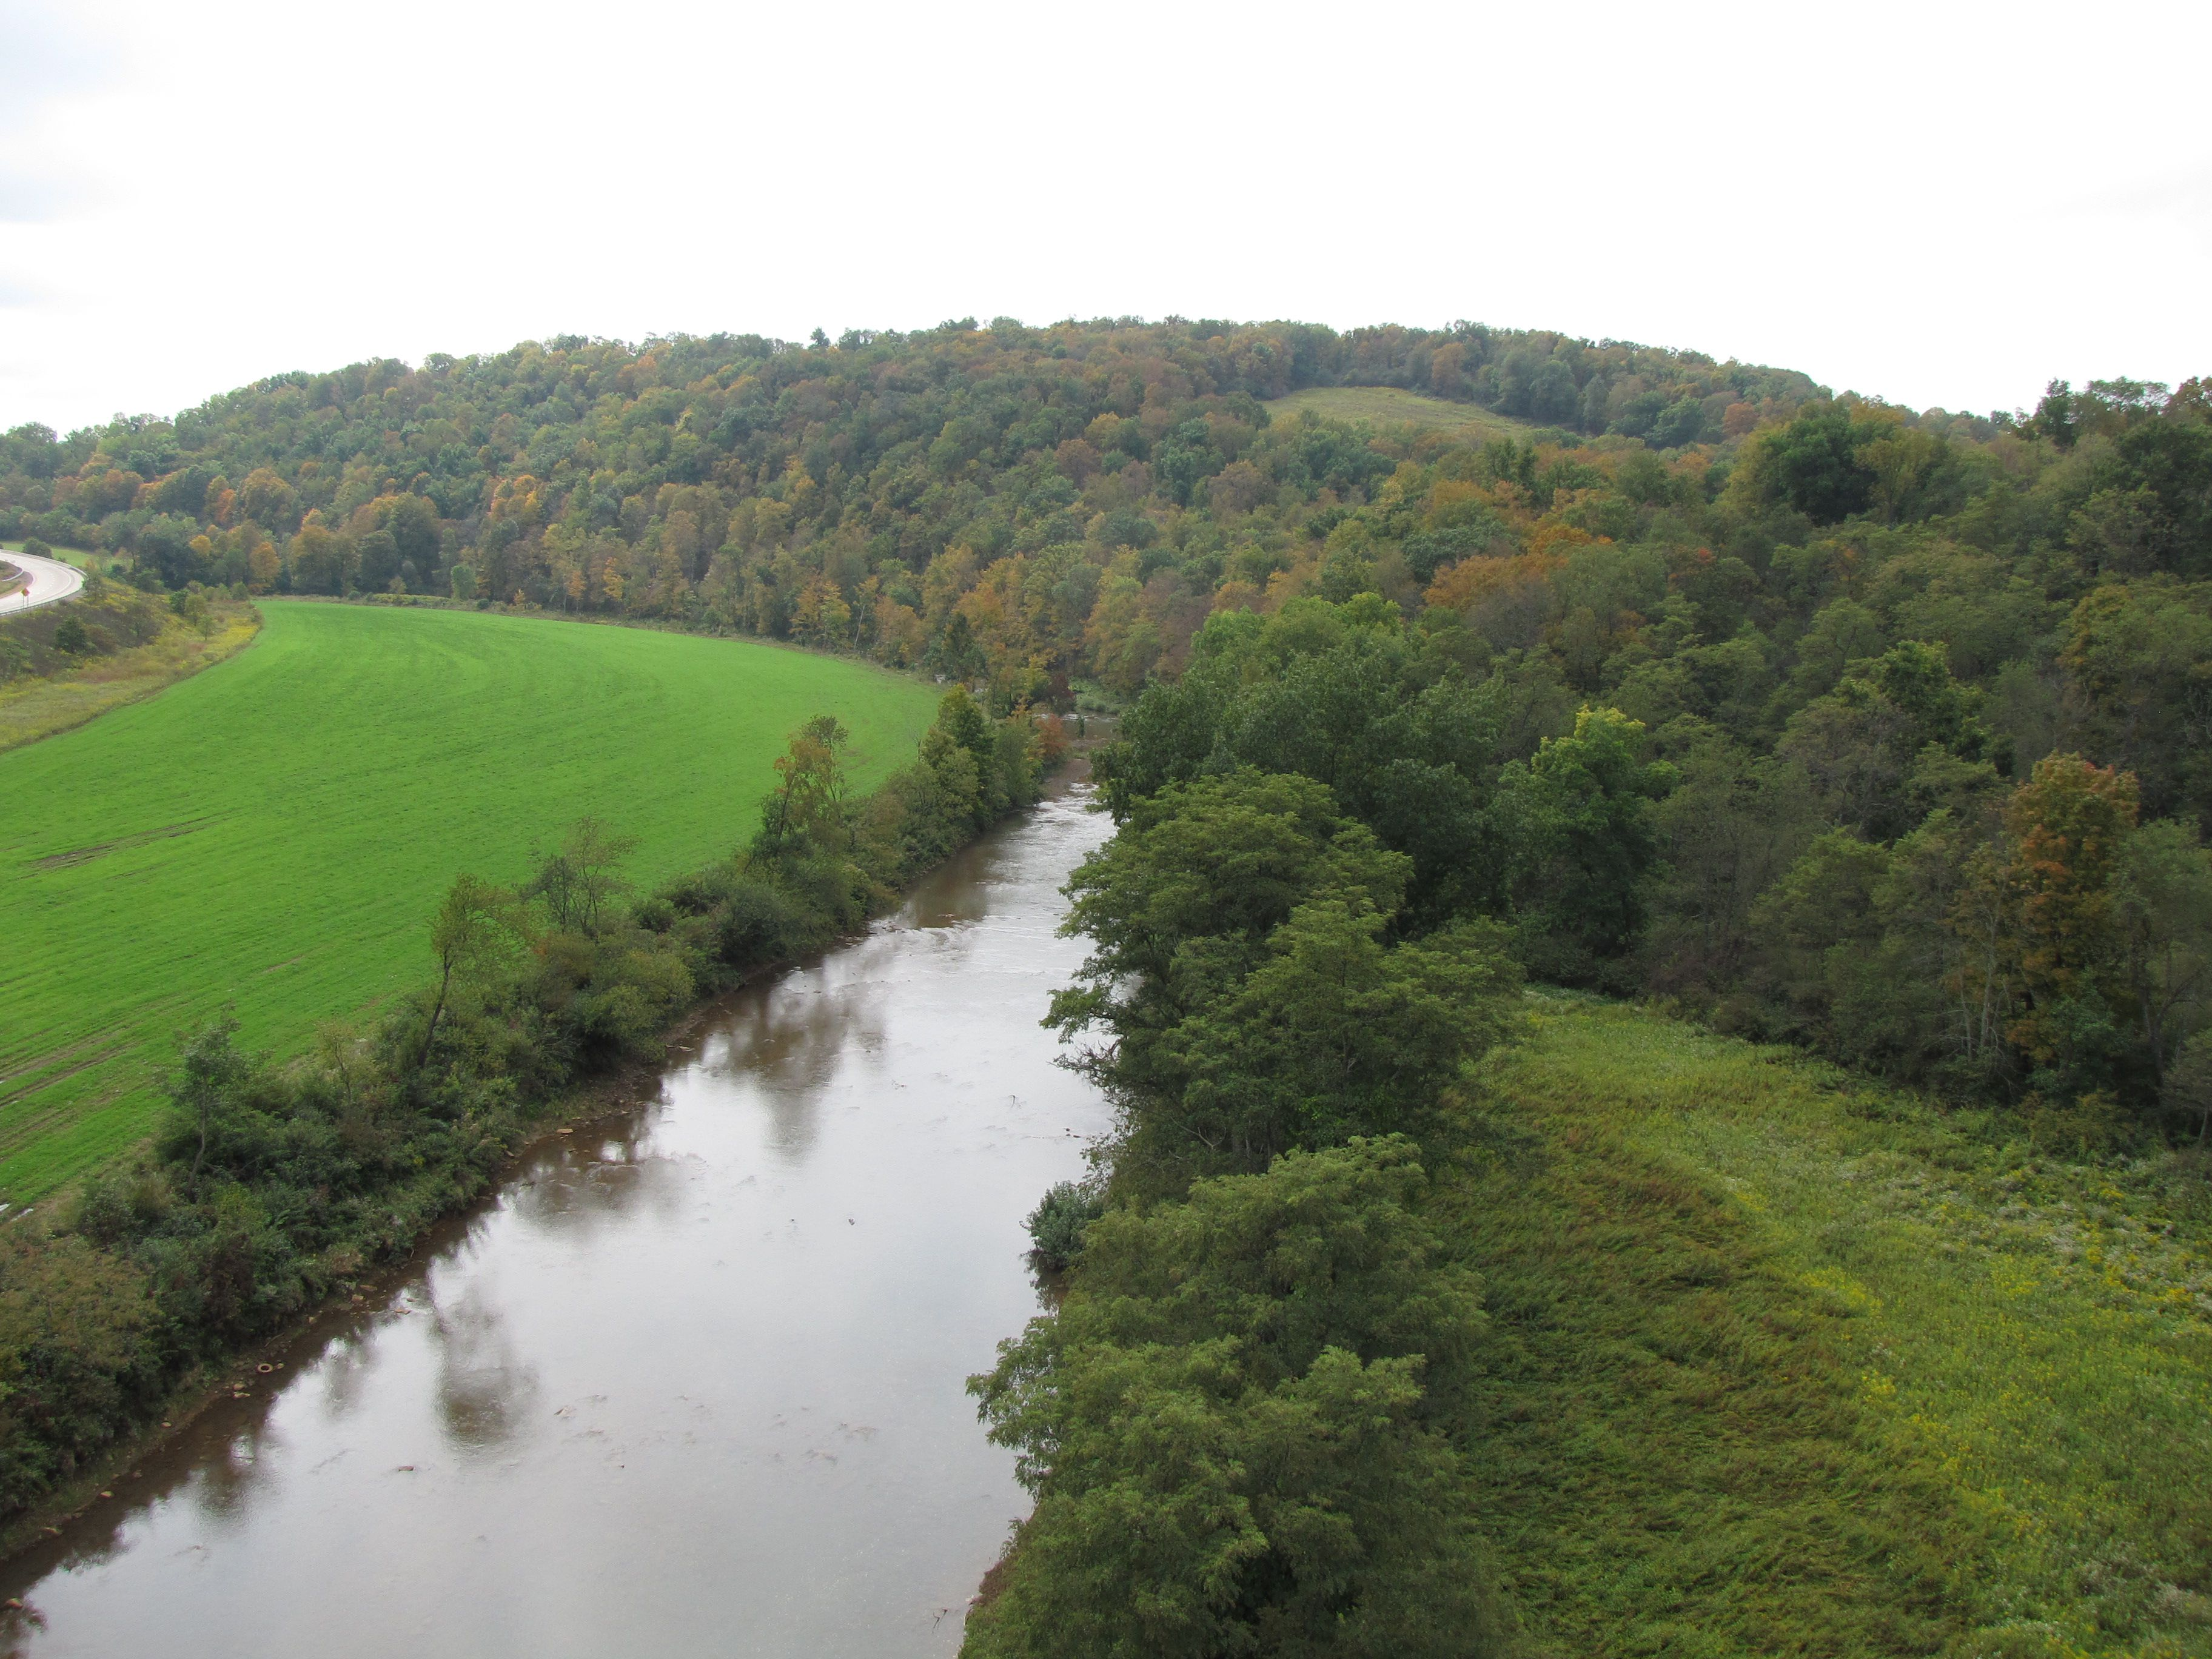 View from above of canal running through field of trees in autumn at Chesapeake and Ohio Canal National Historic Park